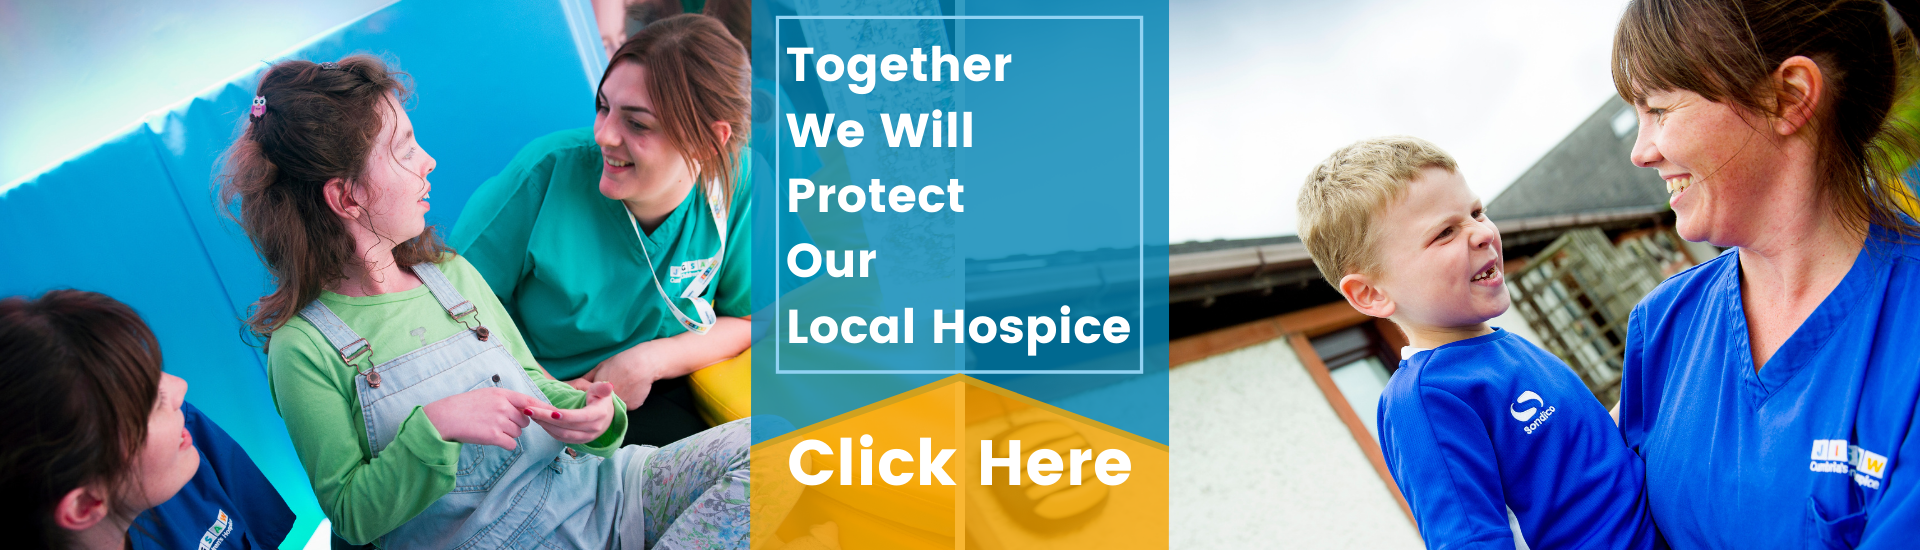 Together We'll Protect our Local Hospital - Click Here